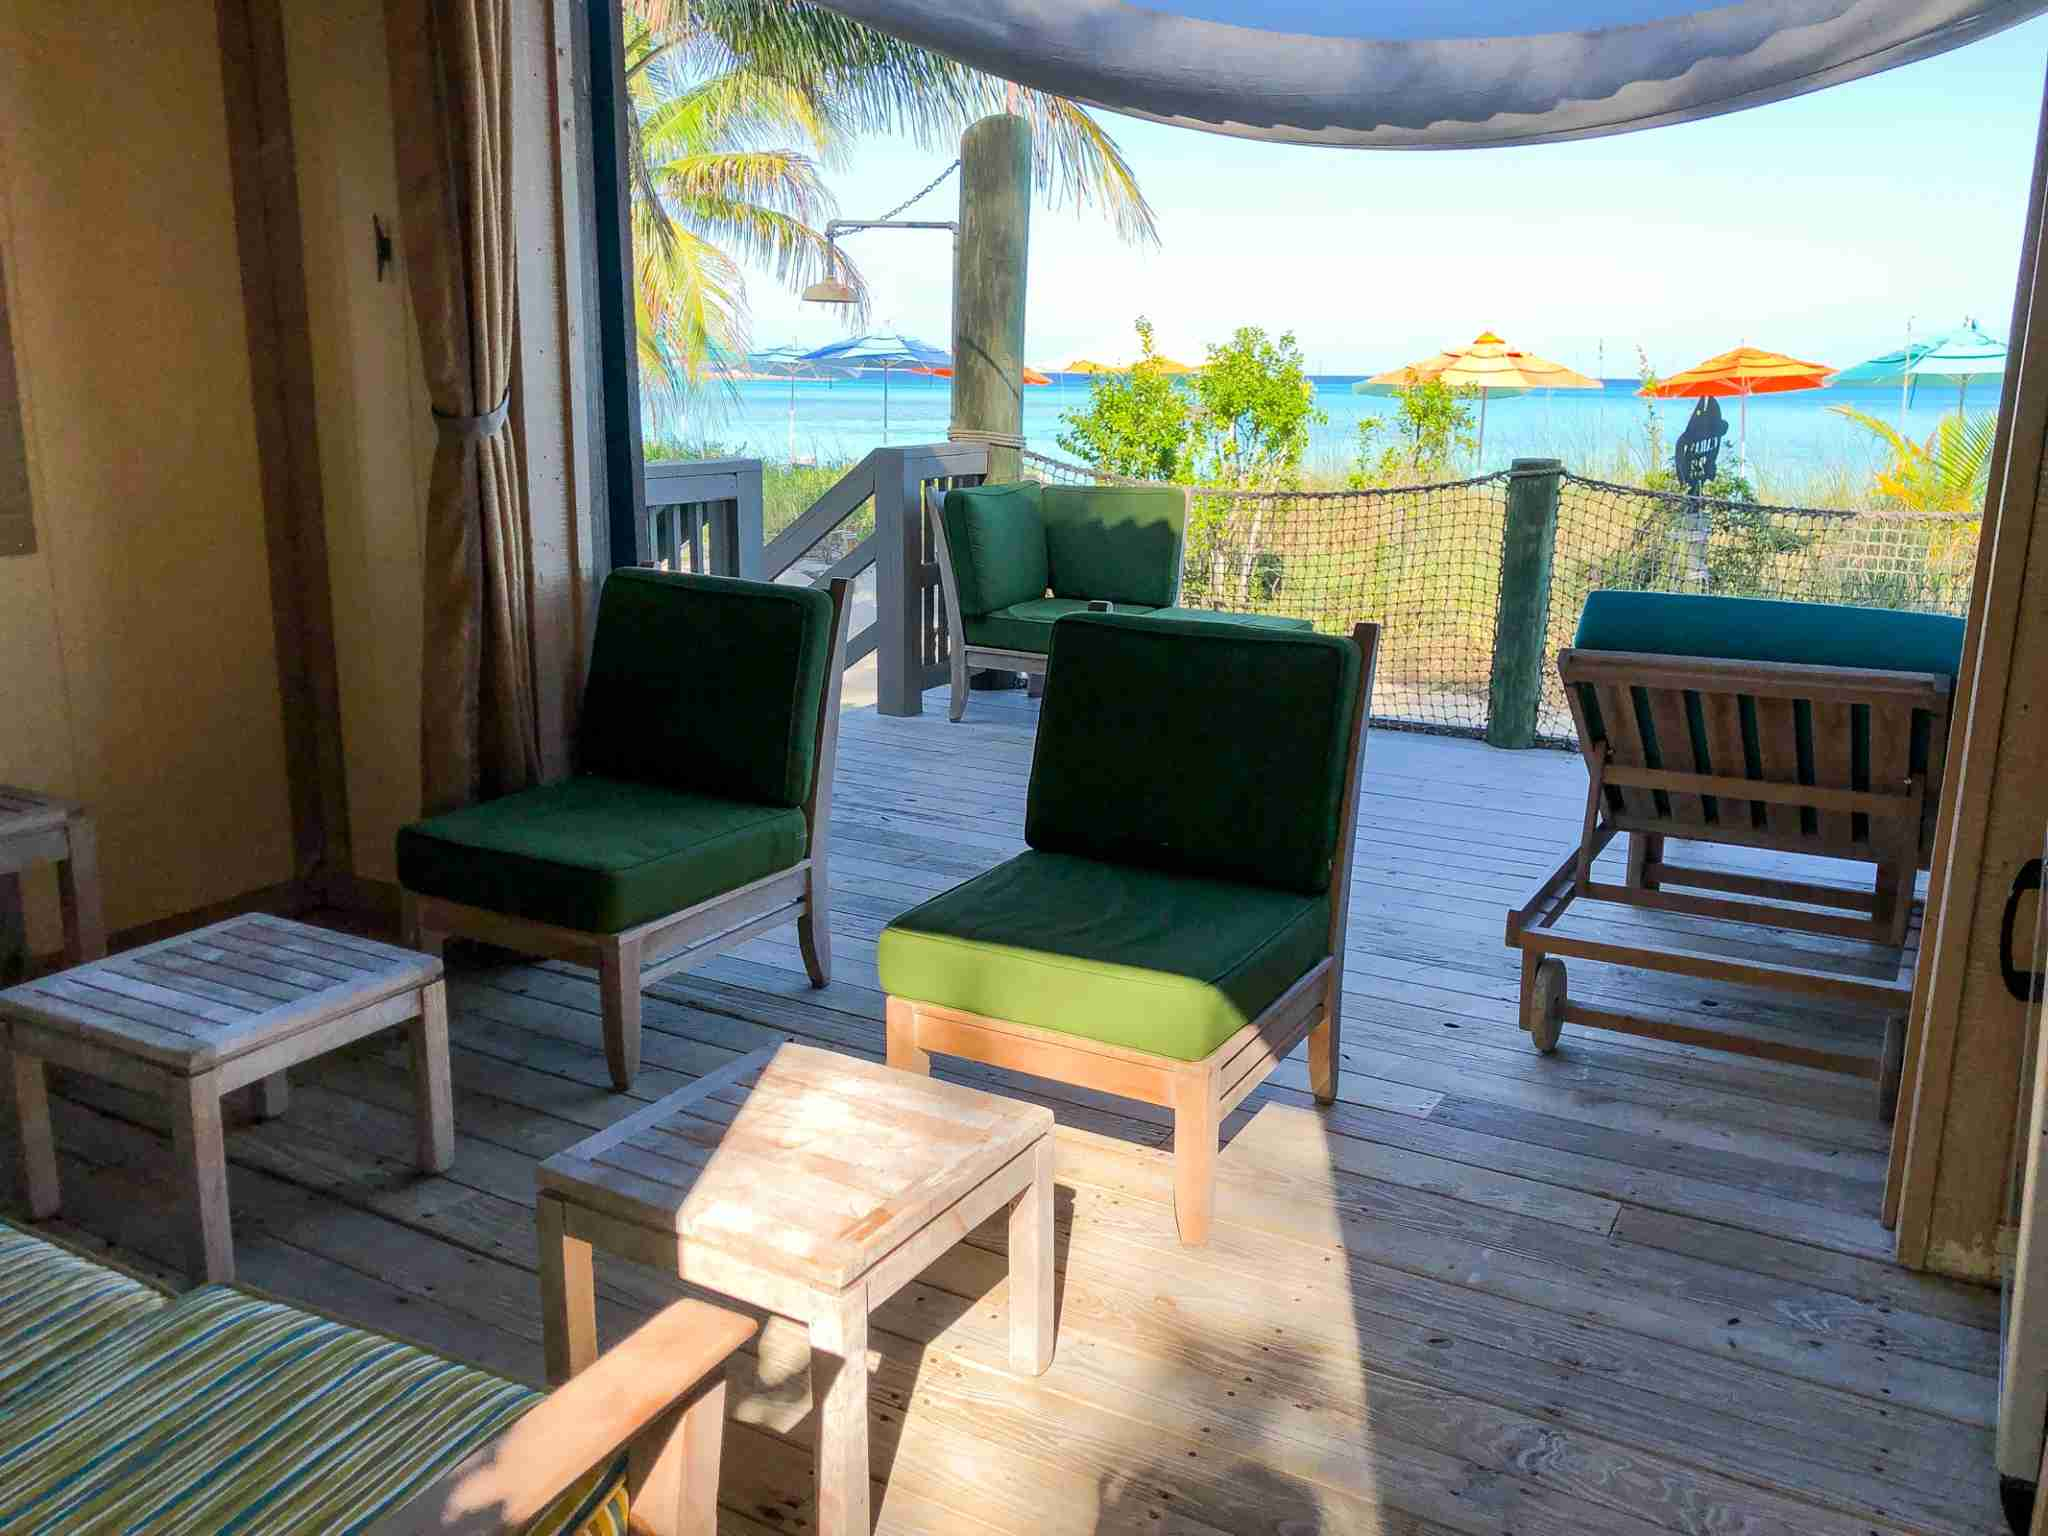 Peek inside a cabana on Castaway Cay